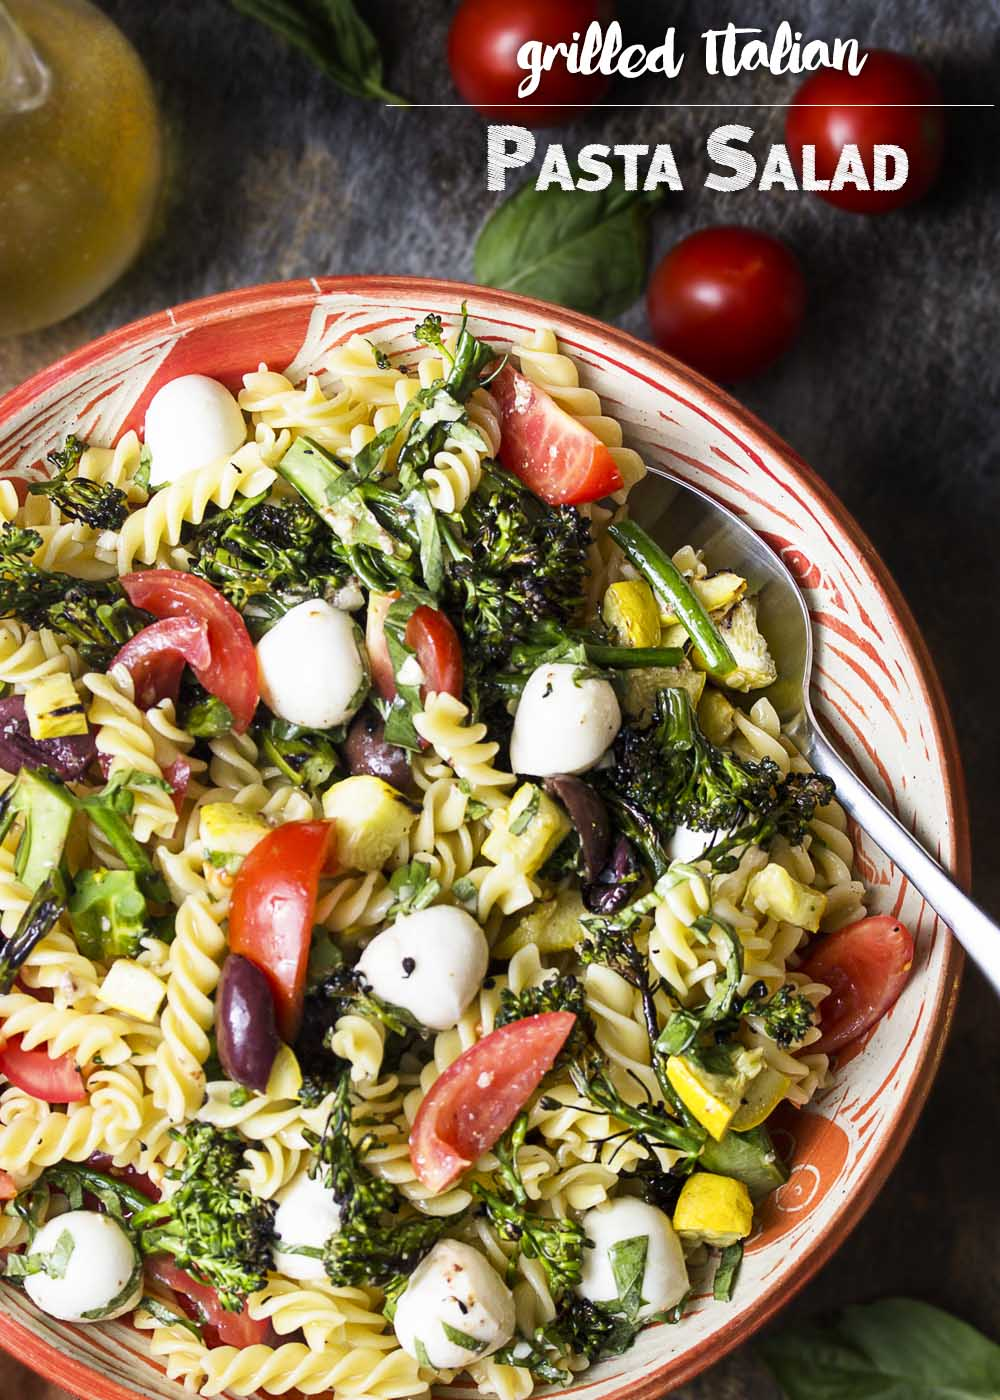 My Italian pasta salad takes advantage of summer by grilling the vegetables and then tossing them with homemade Italian dressing. Light, fresh, and easy!   justalittlebitofbacon.com